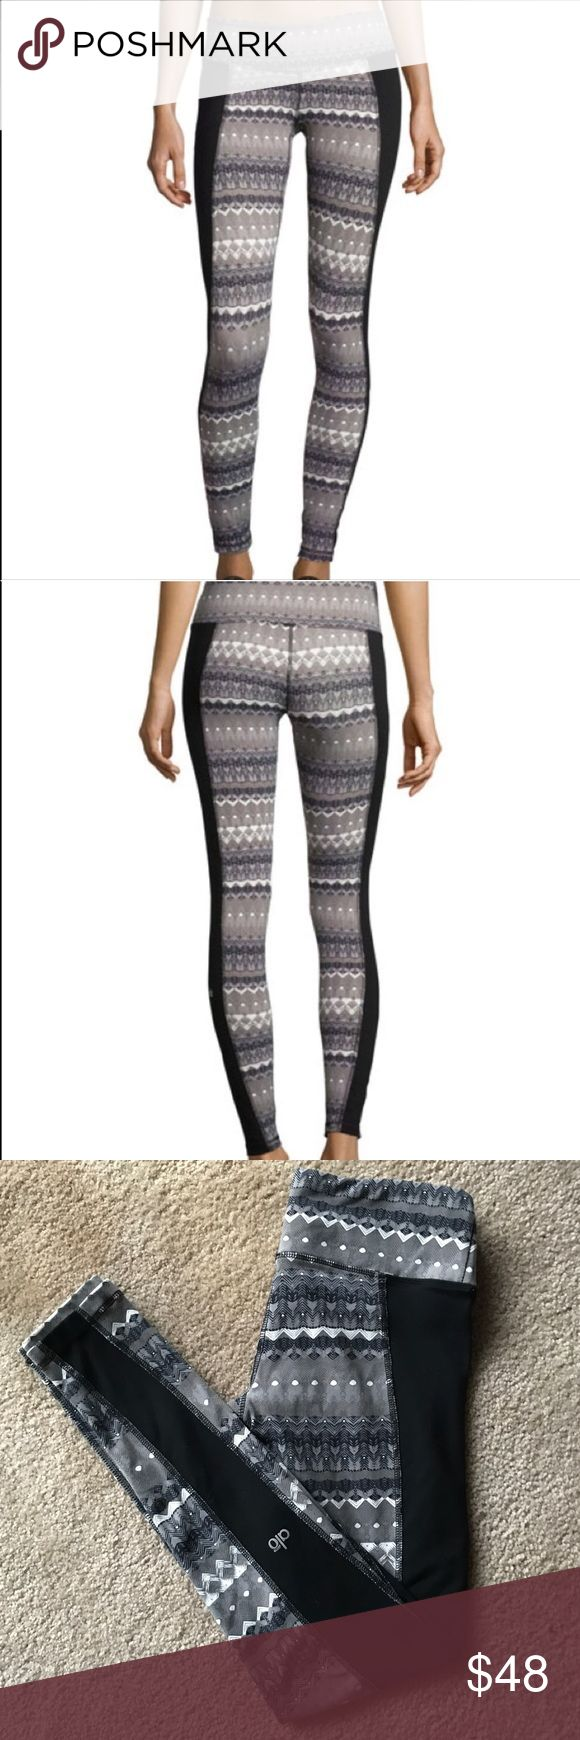 ALO Yoga illusion 3 arctic viridian black leggings Excellent used condition, no pilling, rips, or stains. Size small. Rip tag has been removed from inside. Super cute black and gray tribal print with black paneling on sides. High performance athletic fabric that wicks sweat and dries quickly. Pocket in waistband. ALO Yoga Pants Leggings